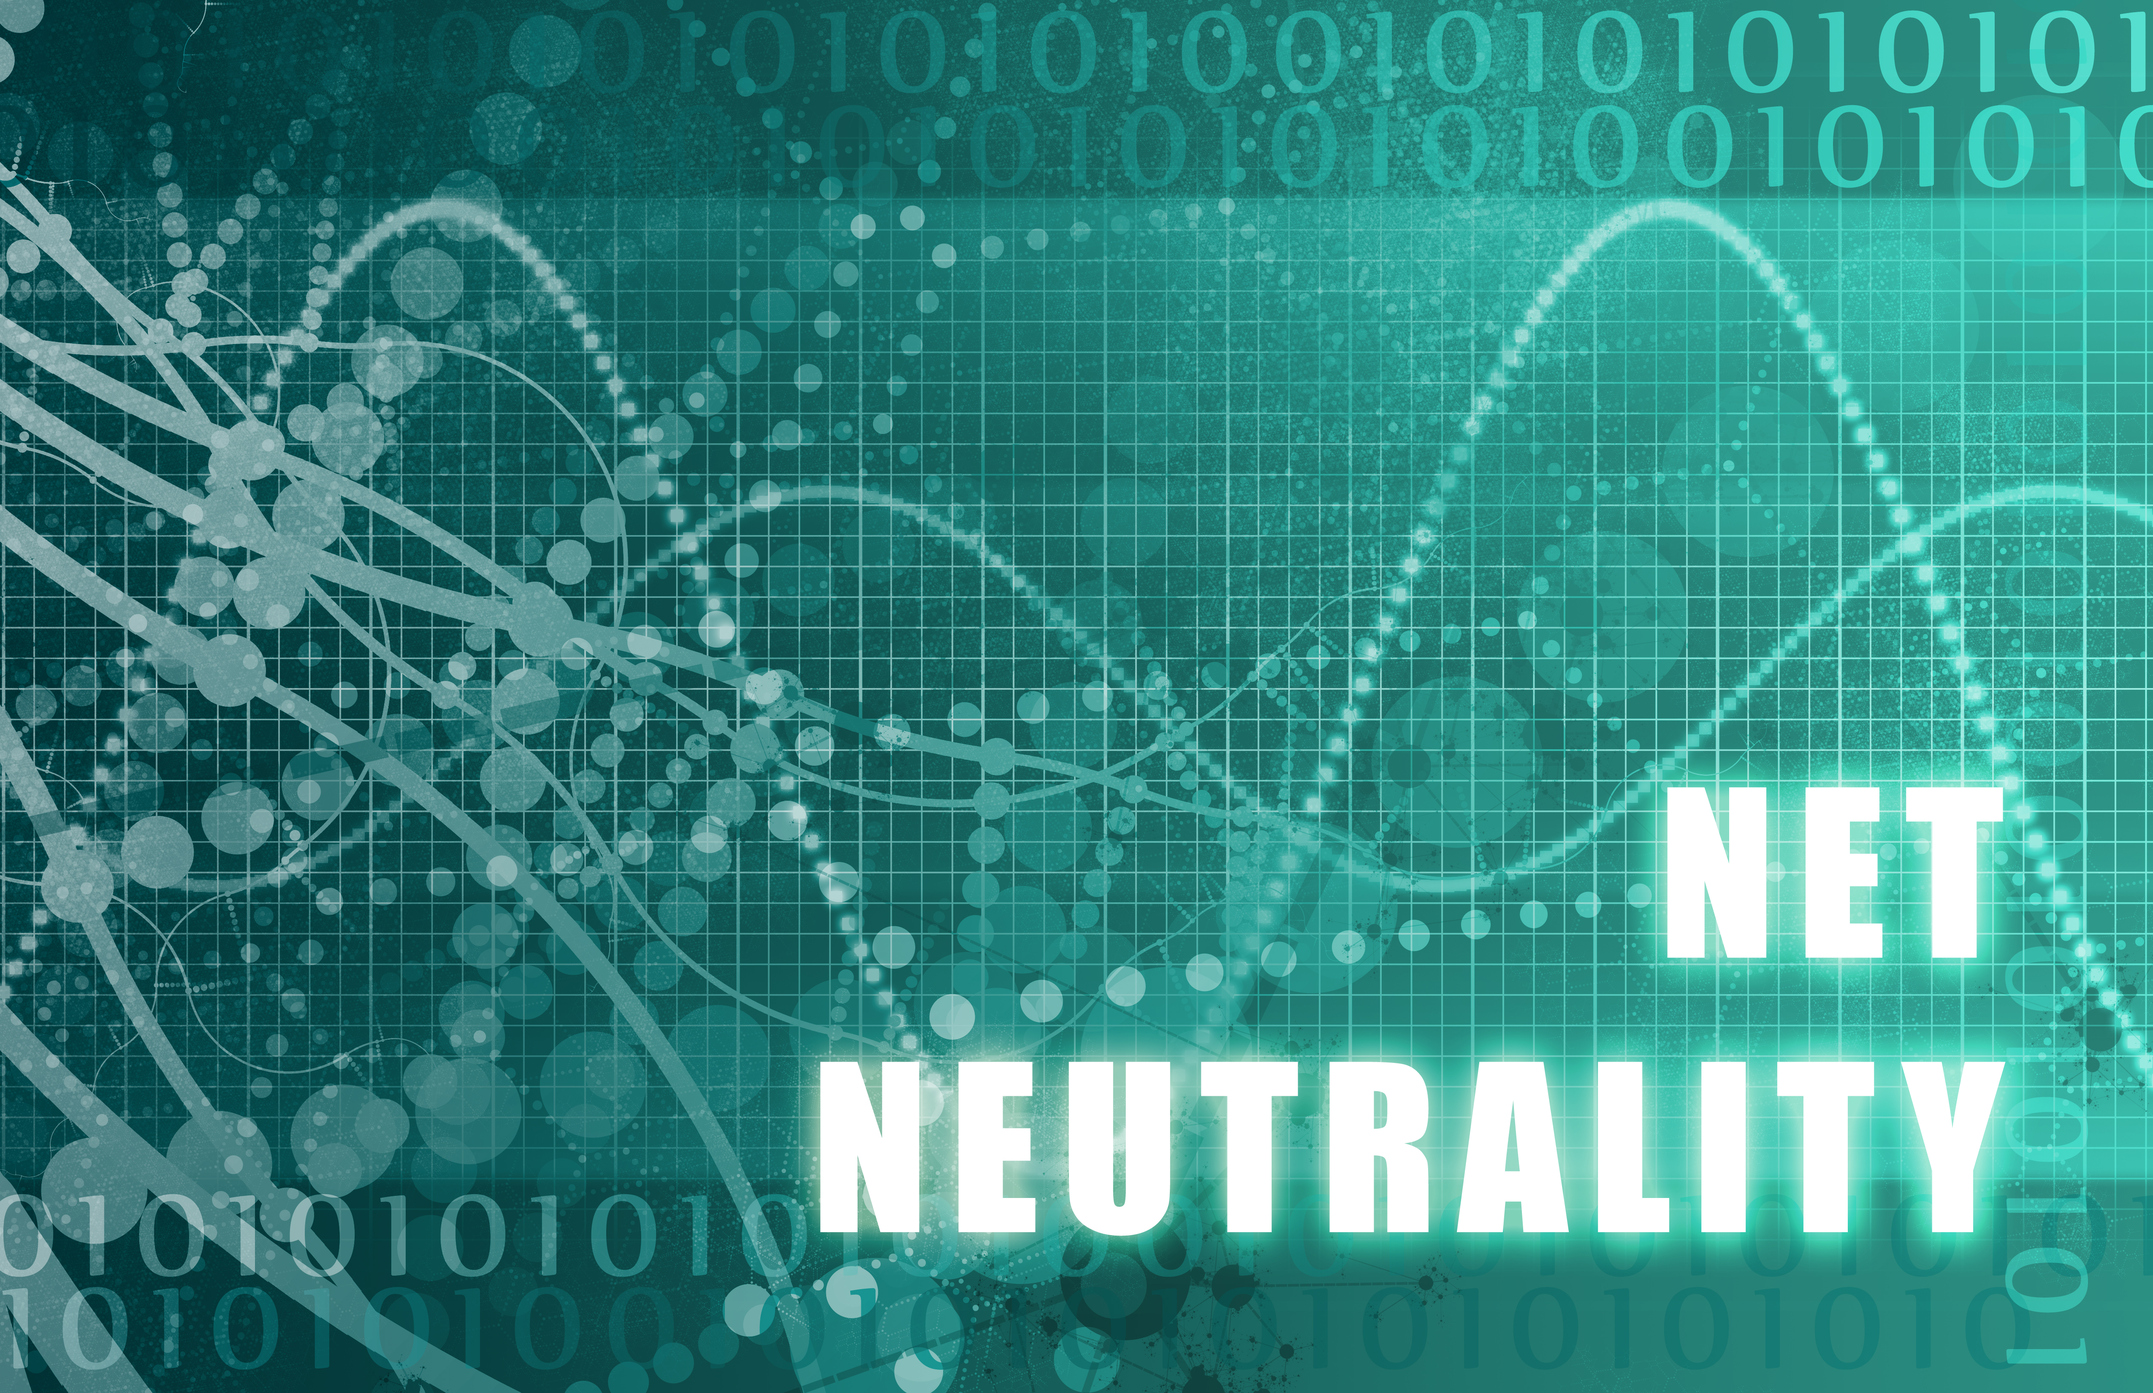 understanding net neutrality and the violation of the free internet principle by internet service pr The principle that internet service providers should enable access to all content and applications regardless of the source, and without favoring or blocking.